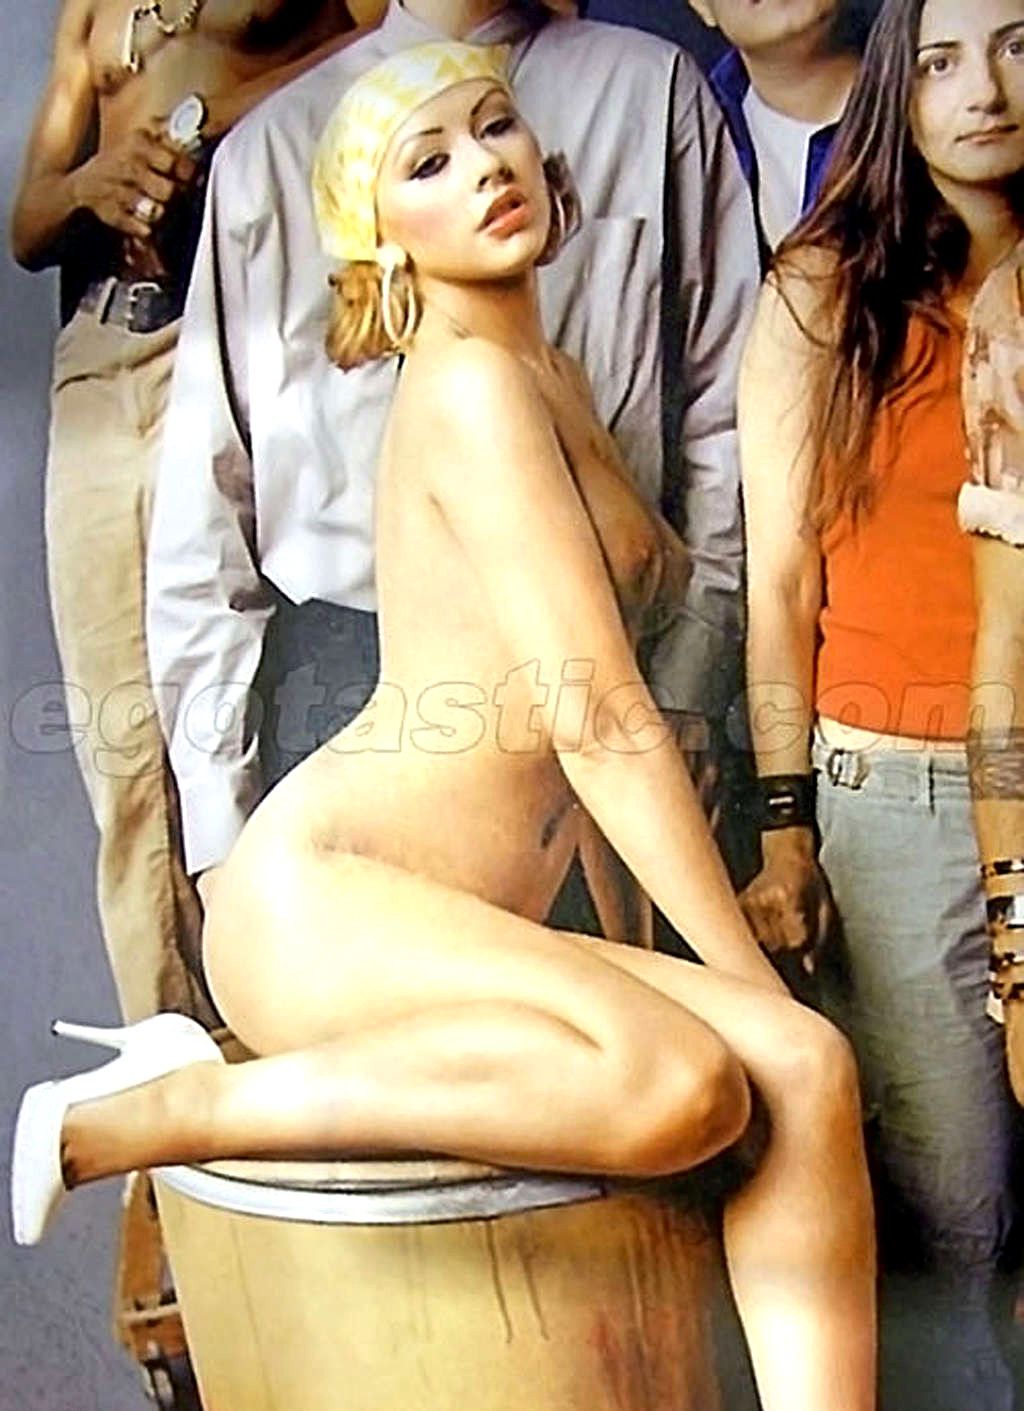 Nude christina aguilera upskirt pic from